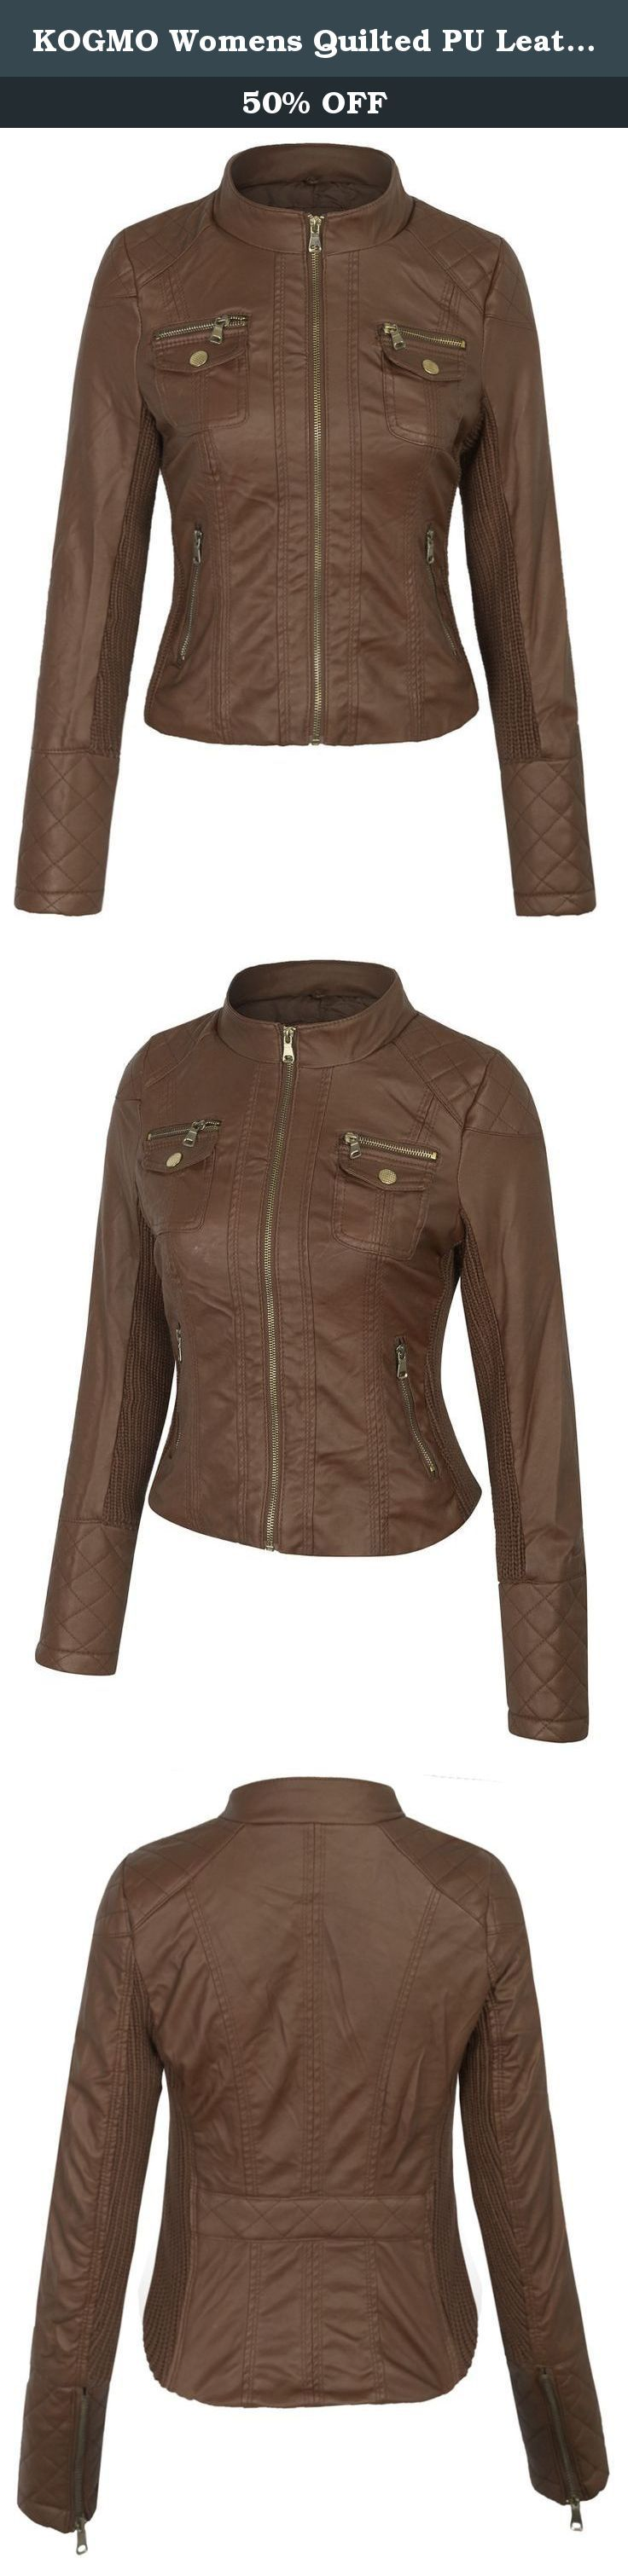 KOGMO Womens Quilted PU Leather Jacket with Removable Hoodie-L-COGNAC_BROWN. KOGMO Womens Quilted PU Leather Jacket with Removable Hoodie.